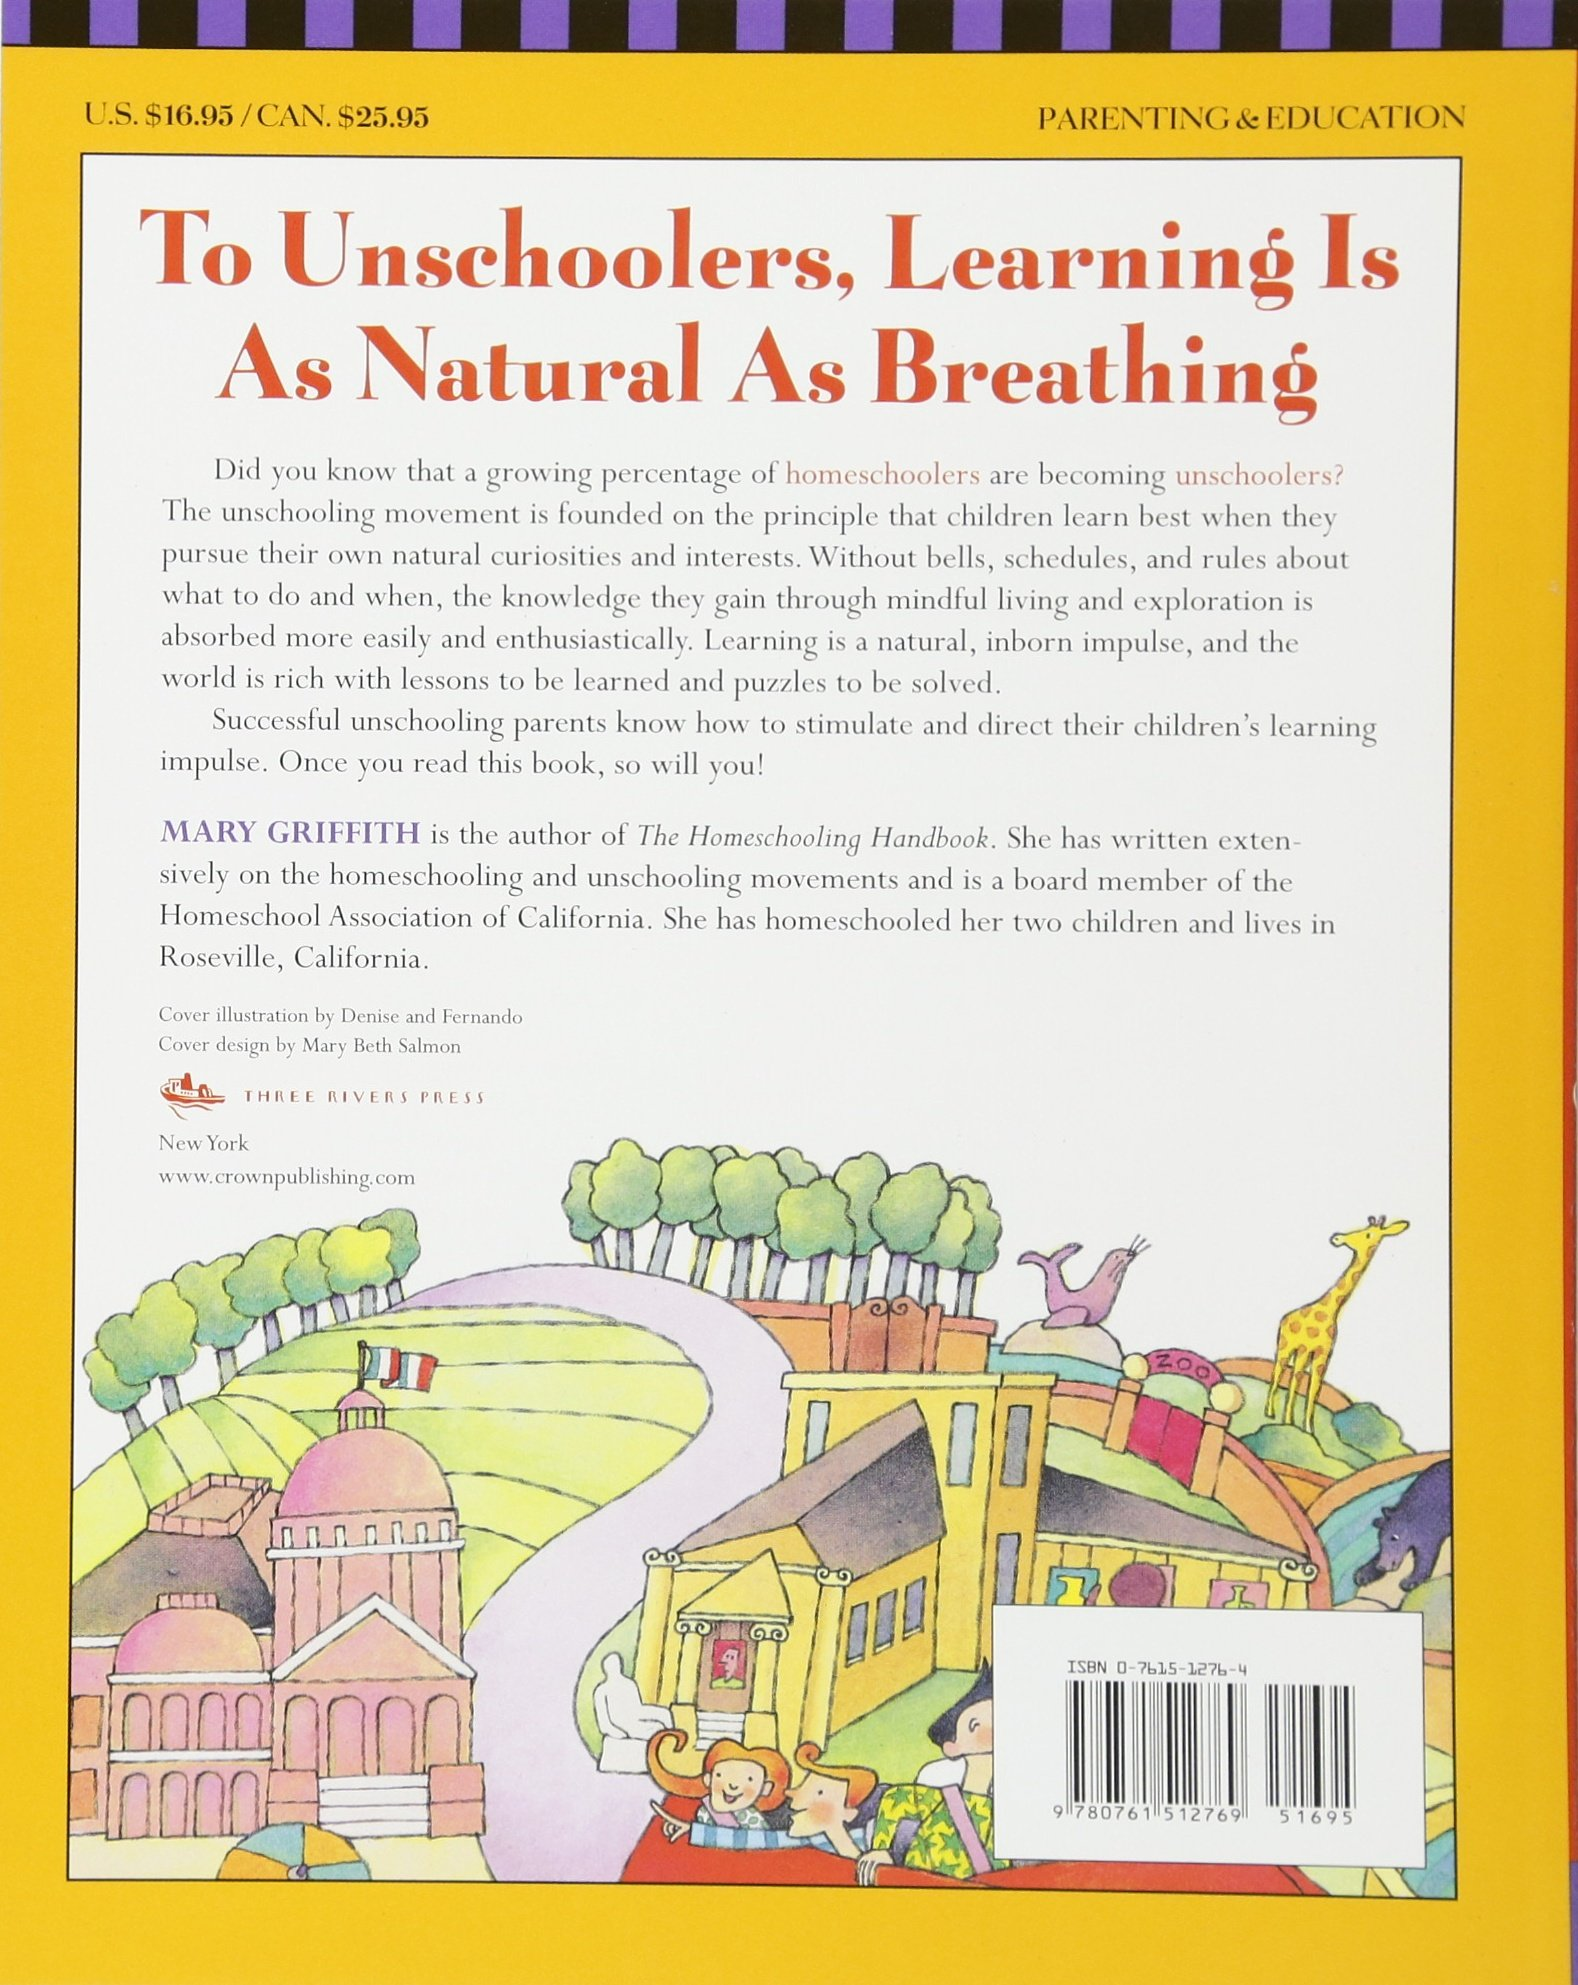 Amazon.com: The Unschooling Handbook : How to Use the Whole World